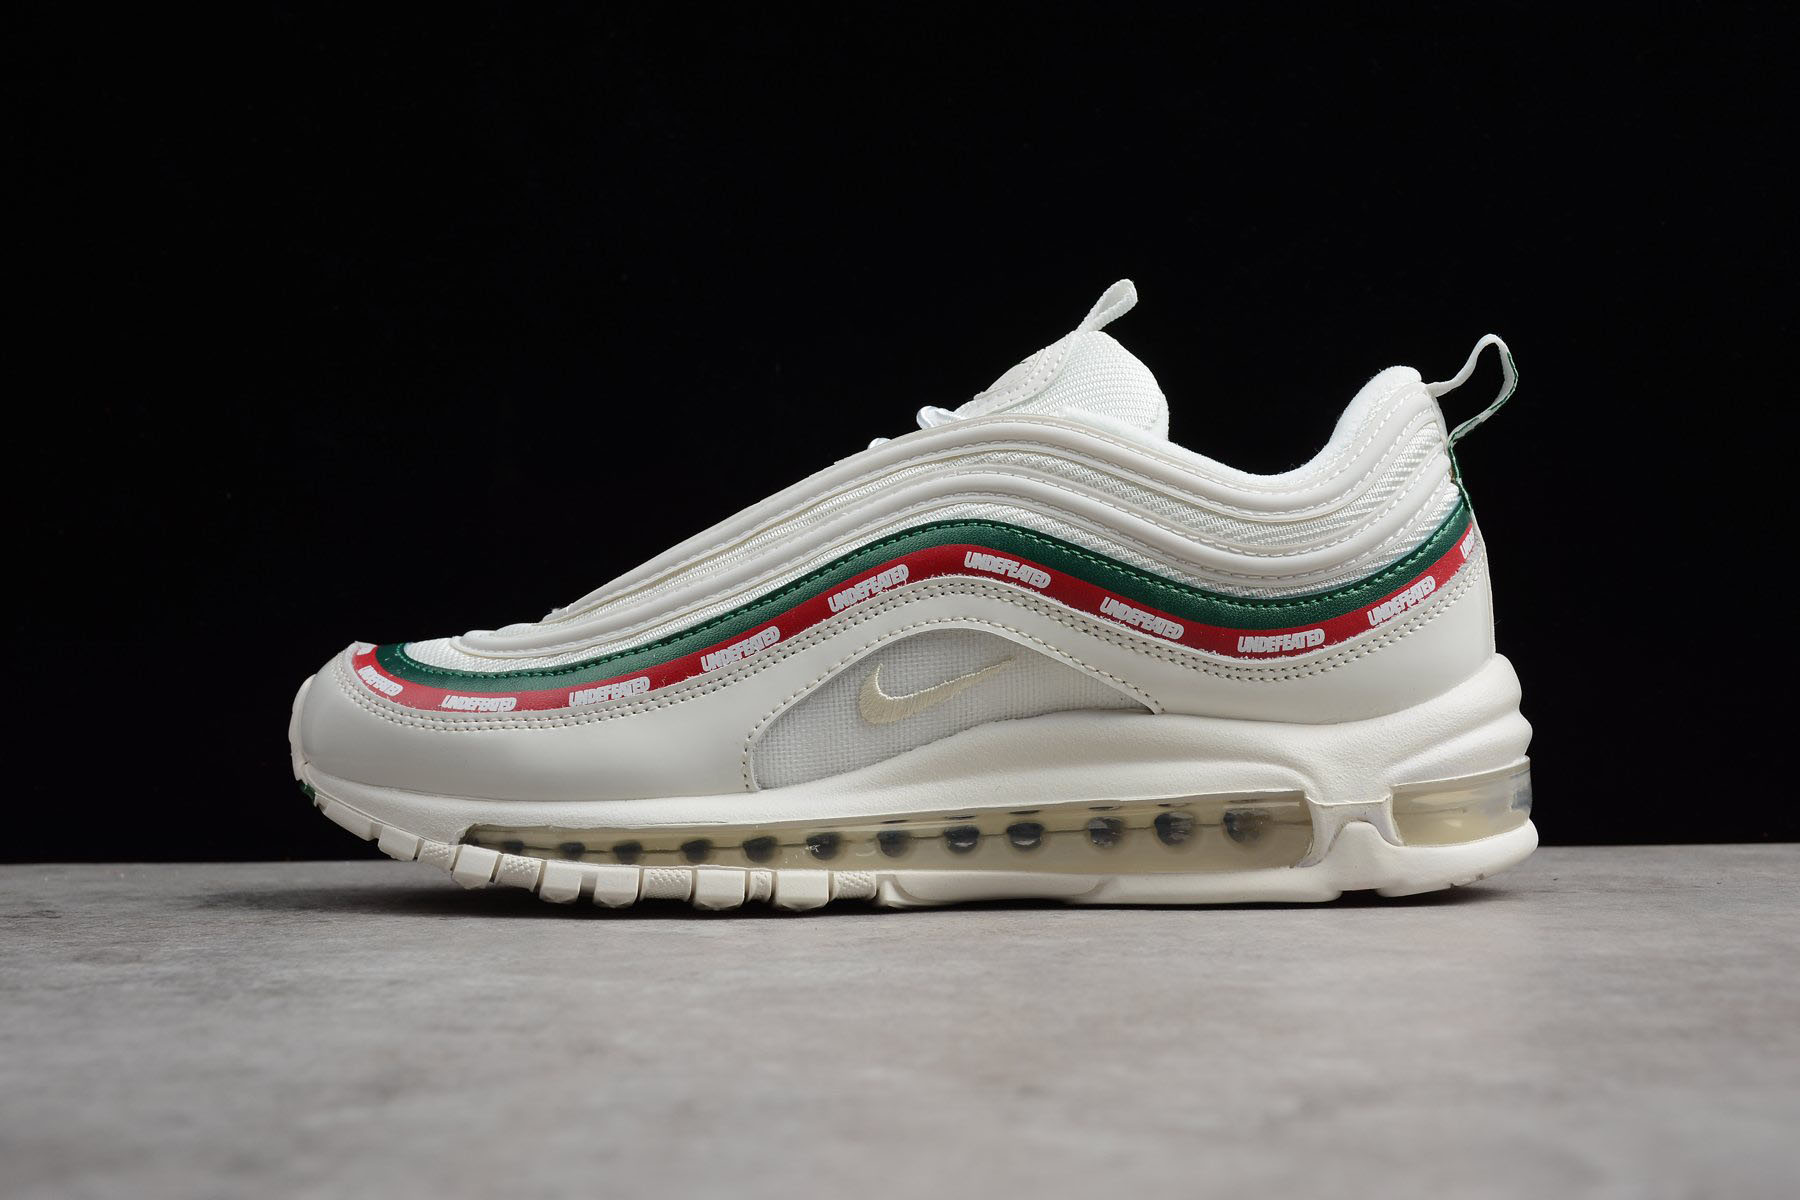 Mens and WMNS Undefeated x Nike Air Max 97 OG in White AJ1986-100 For Sale